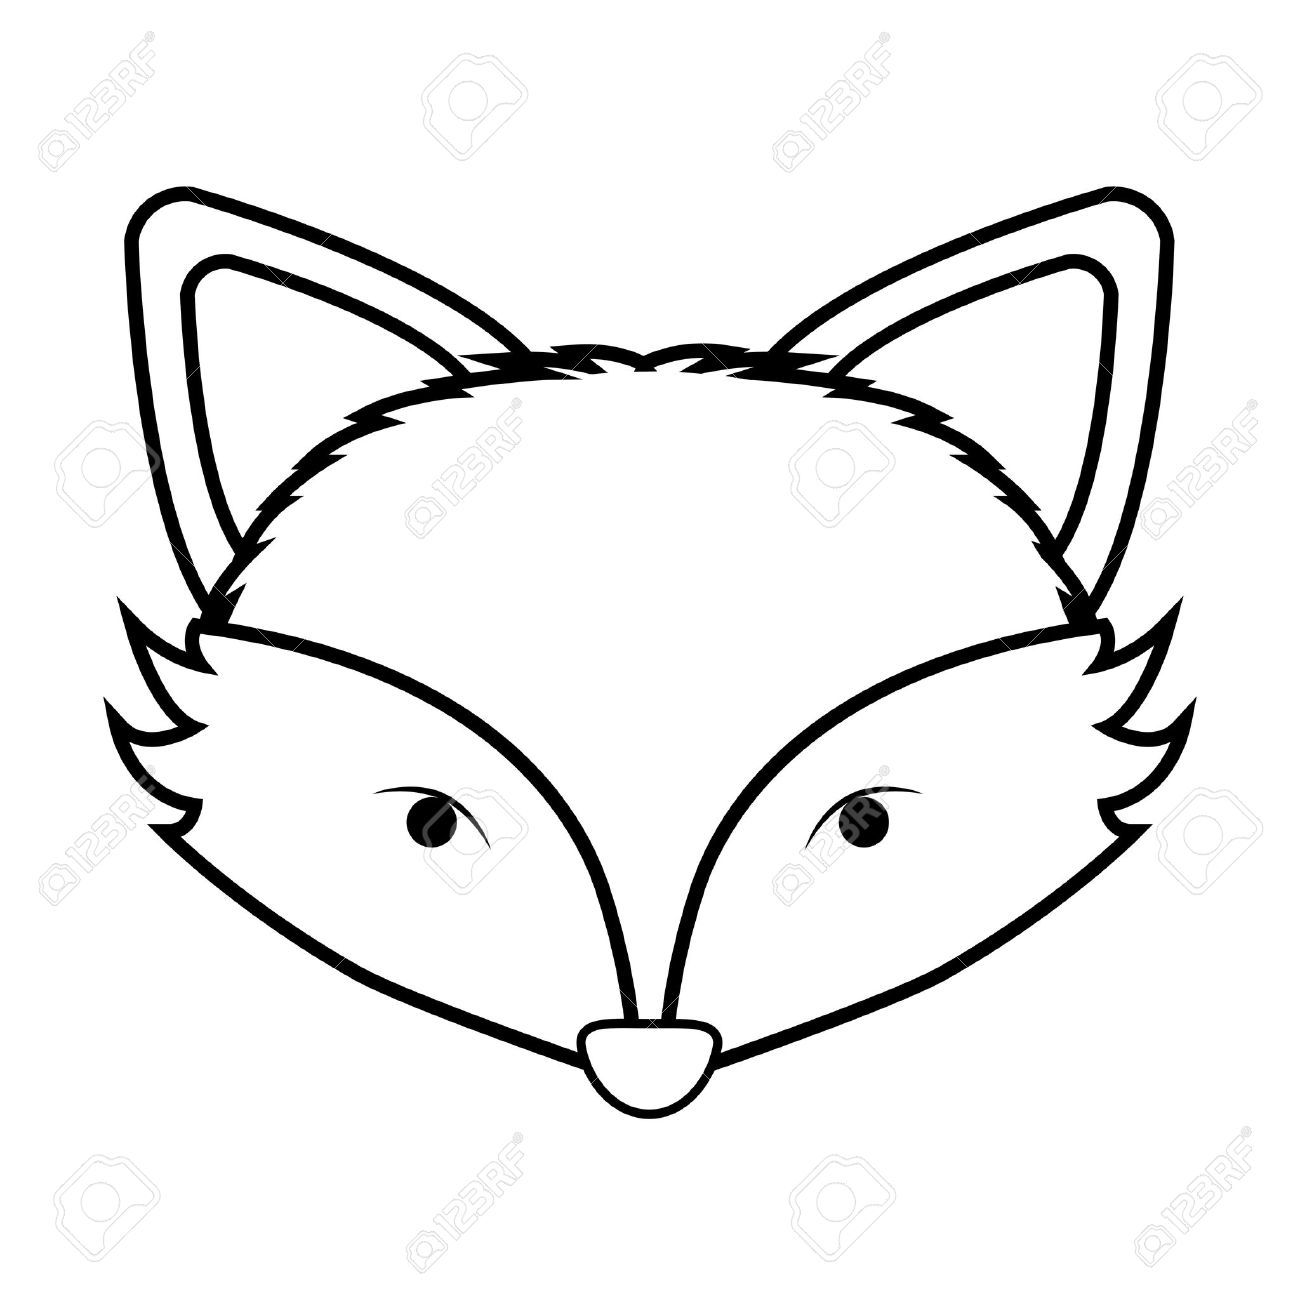 67136024 Contour Monochrome With Fox Face Vector Illustration Stock Vector Jpg 1300 1300 Fox Coloring Page Fox Face Fox Illustration